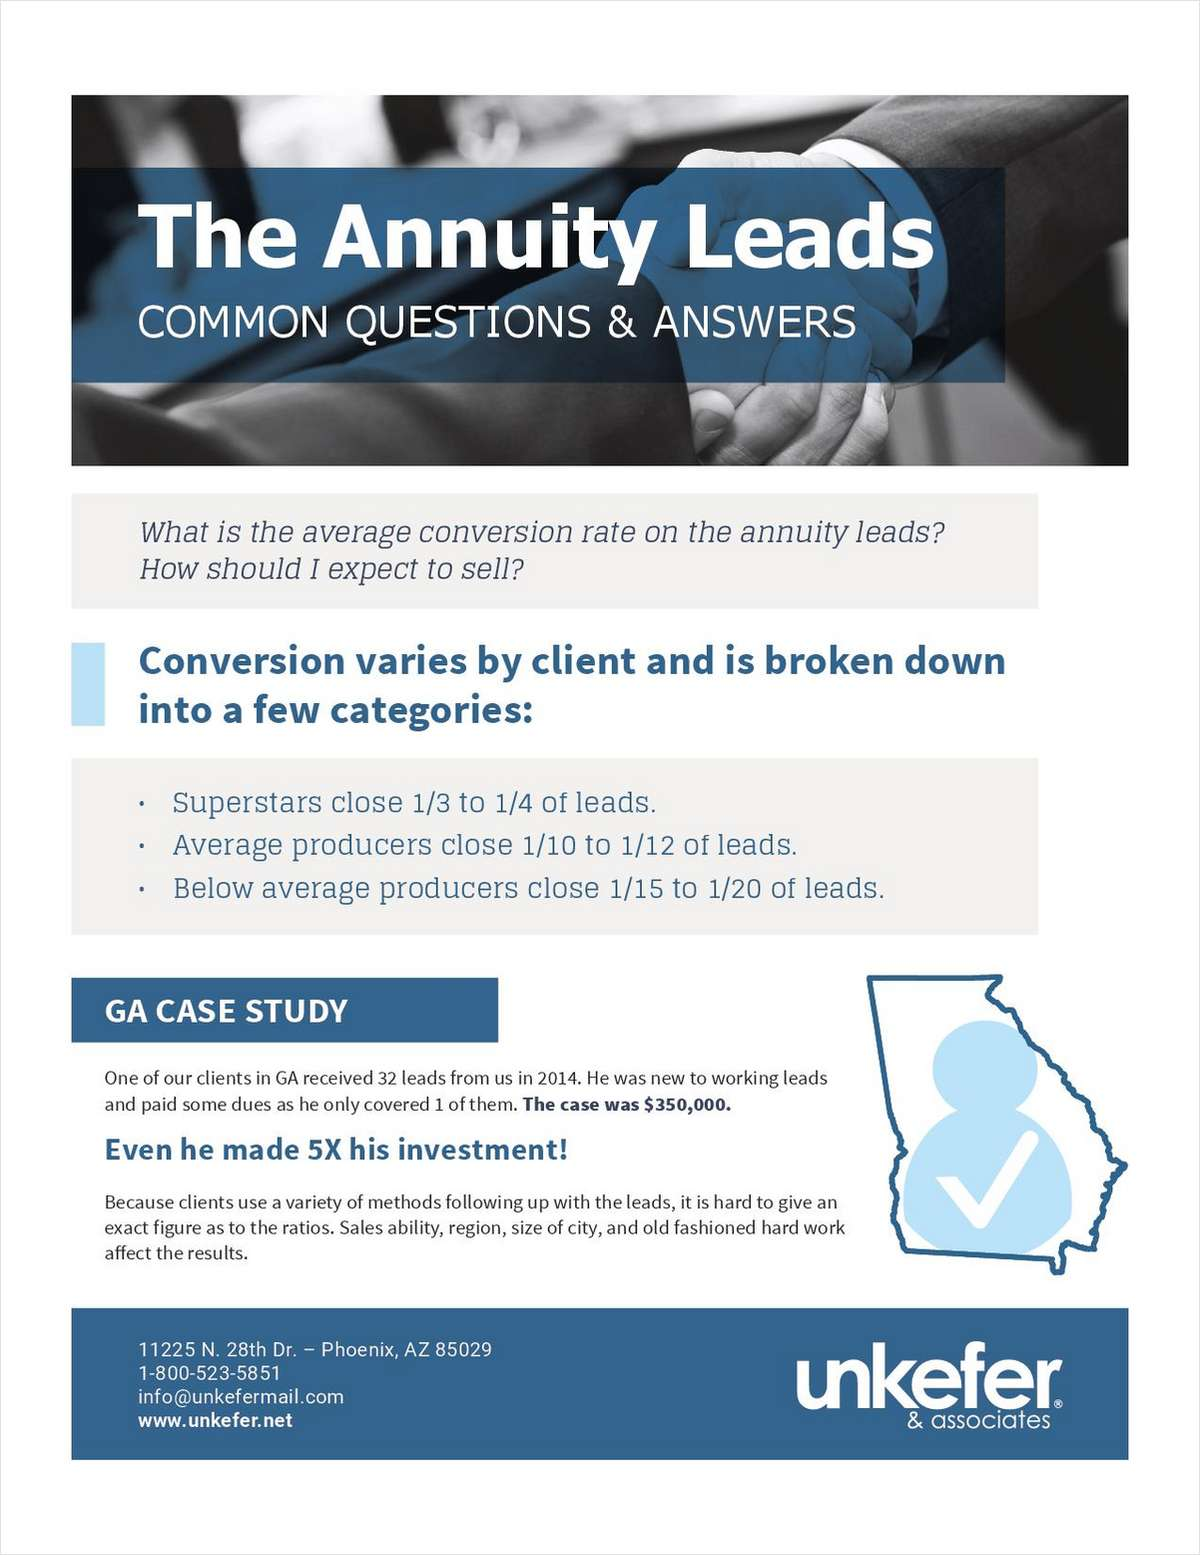 How Qualified are Your Annuity Leads?